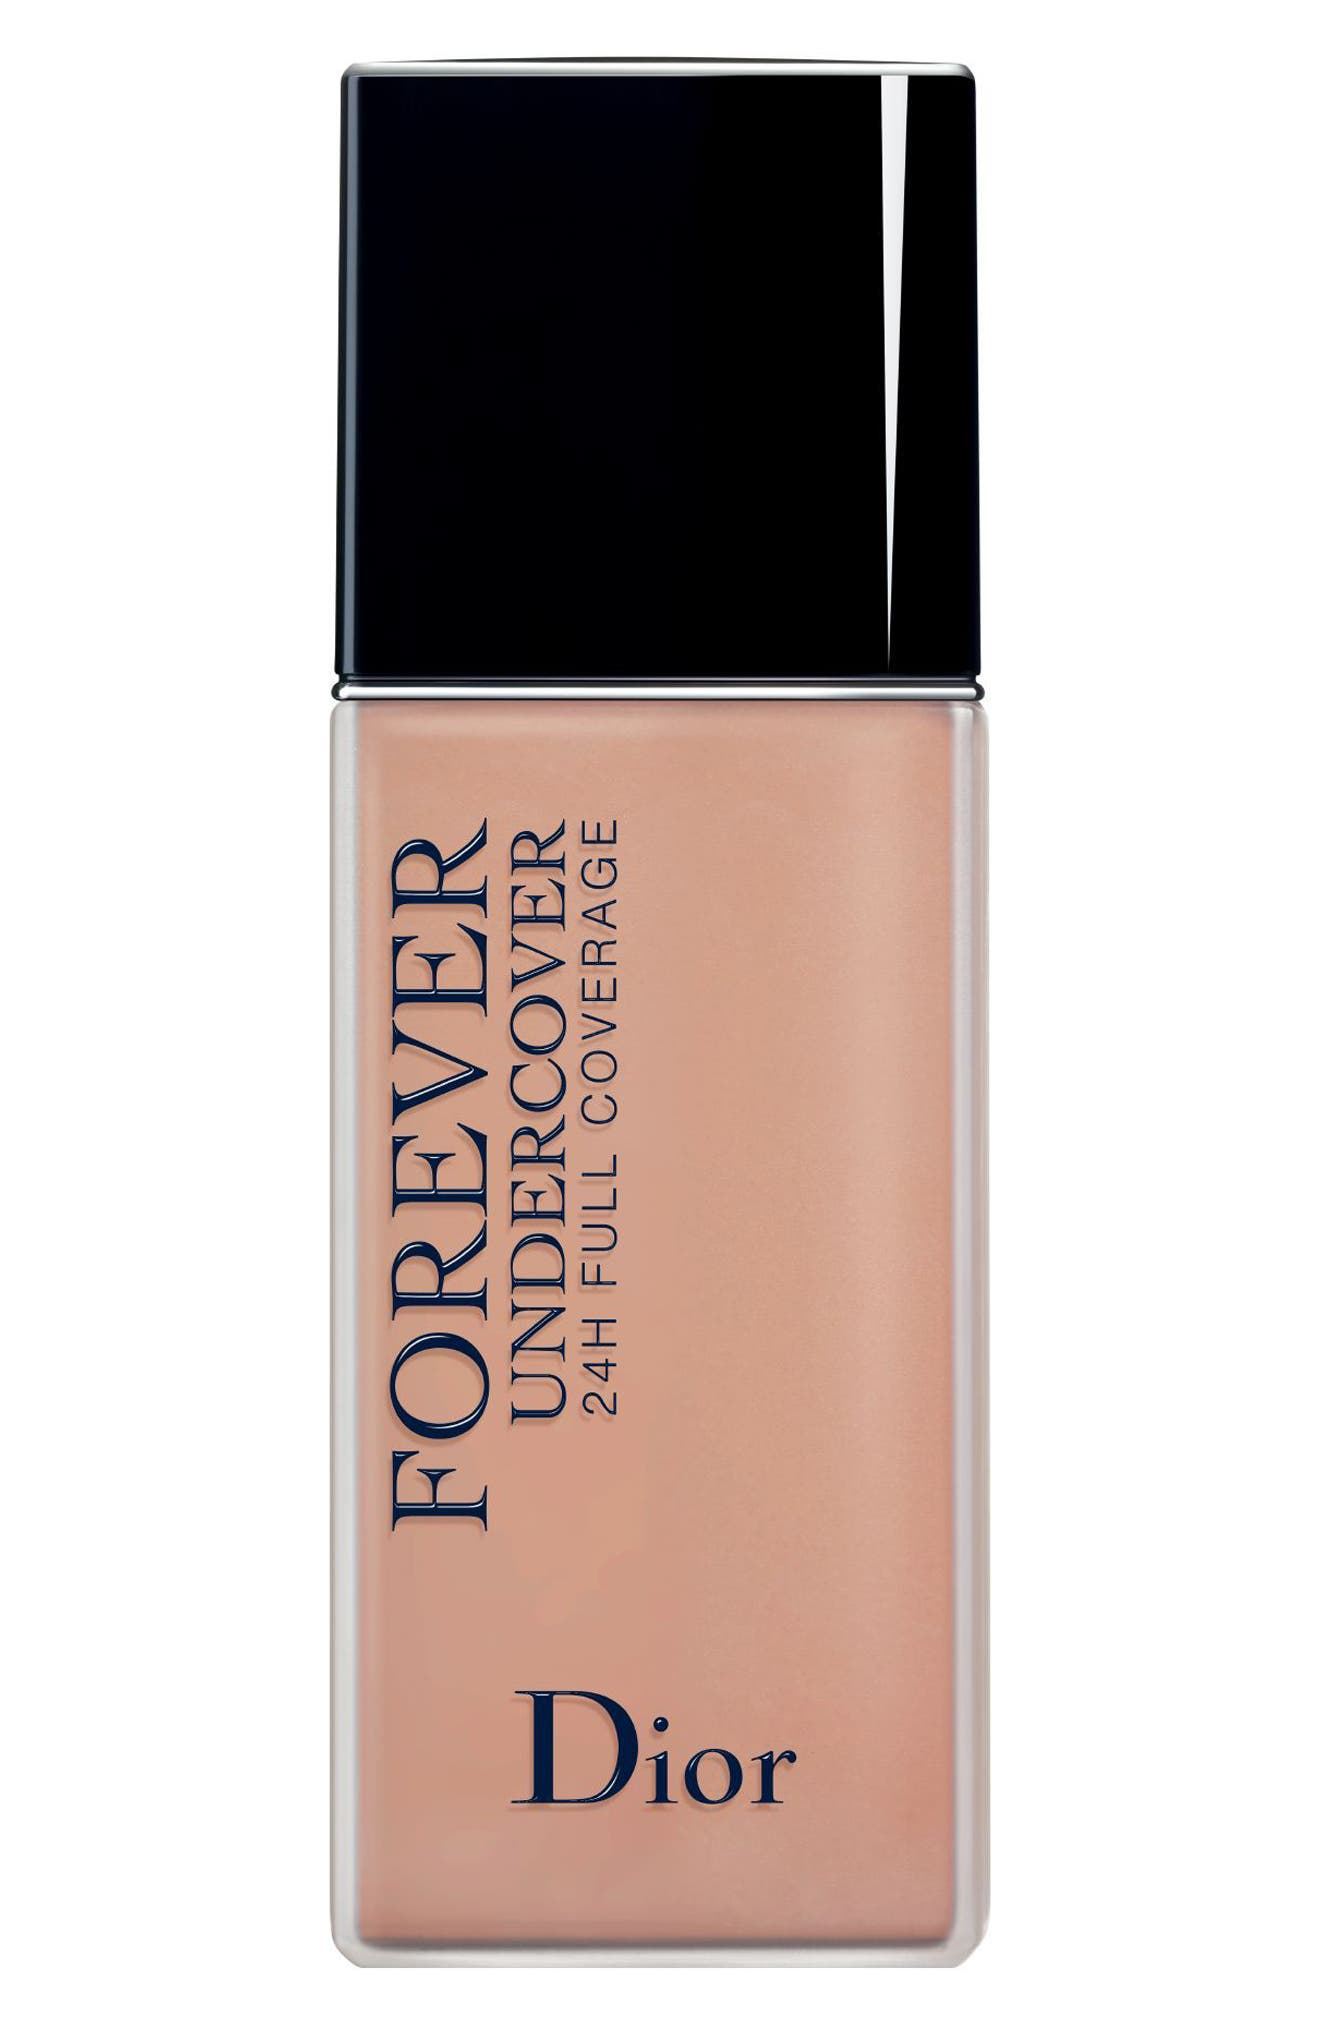 Dior Diorskin Forever Undercover 24-Hour Full Coverage Water-Based Foundation - 034 Almond Beige